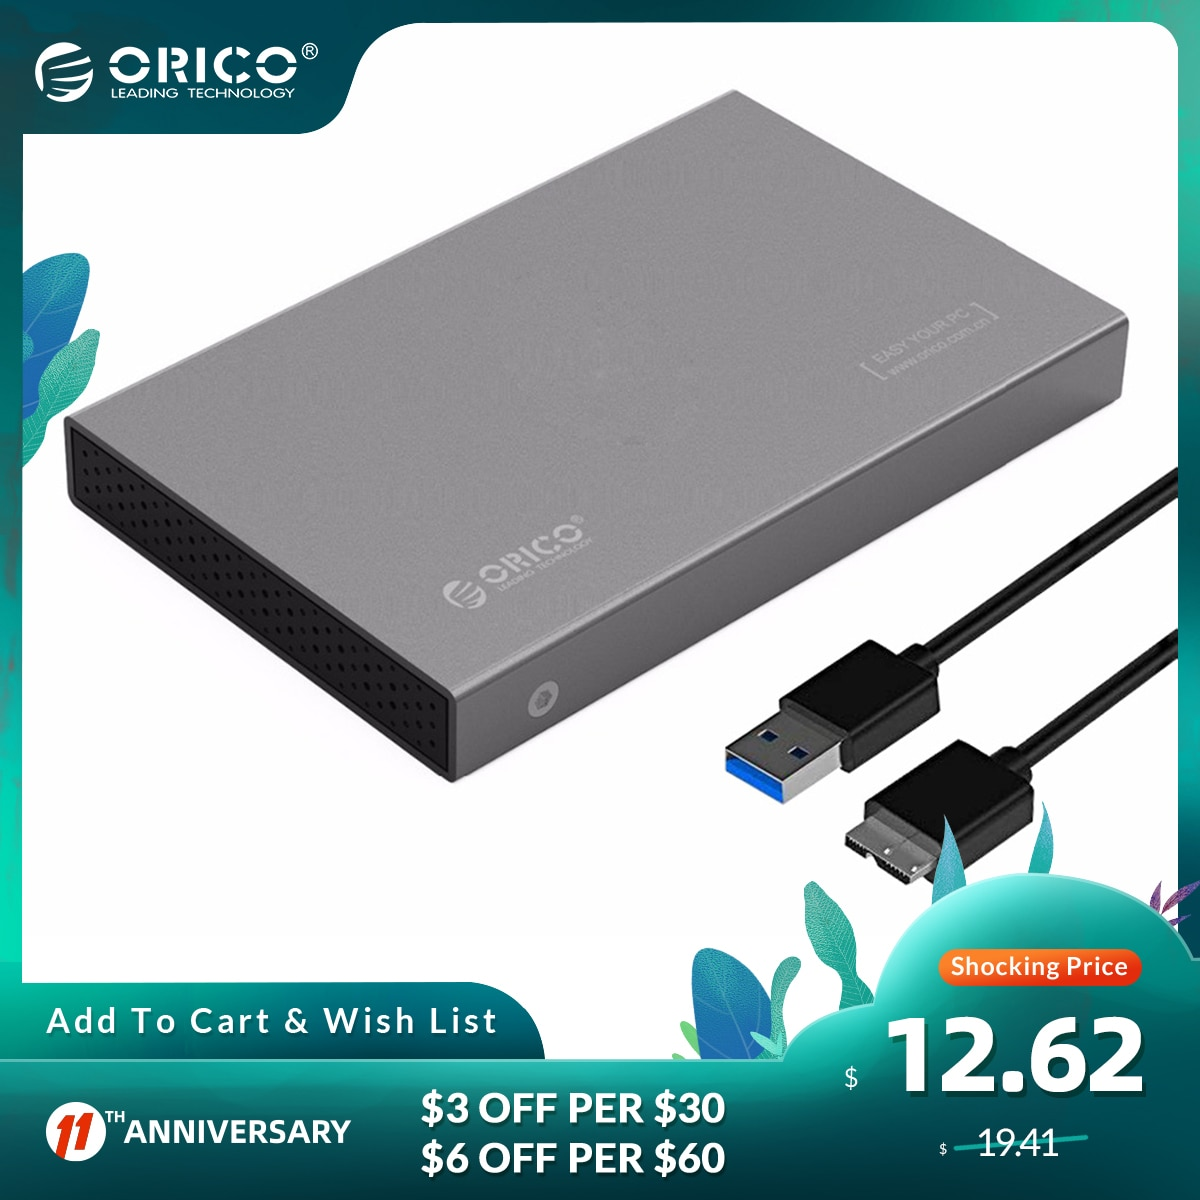 ORICO Aluminum USB3.0 to SATA3.0 HDD Case 2TB 5Gbps 2.5 inch Hard Drive Enclosure Support 7mm & 9.5mm UASP Transfer Protocol